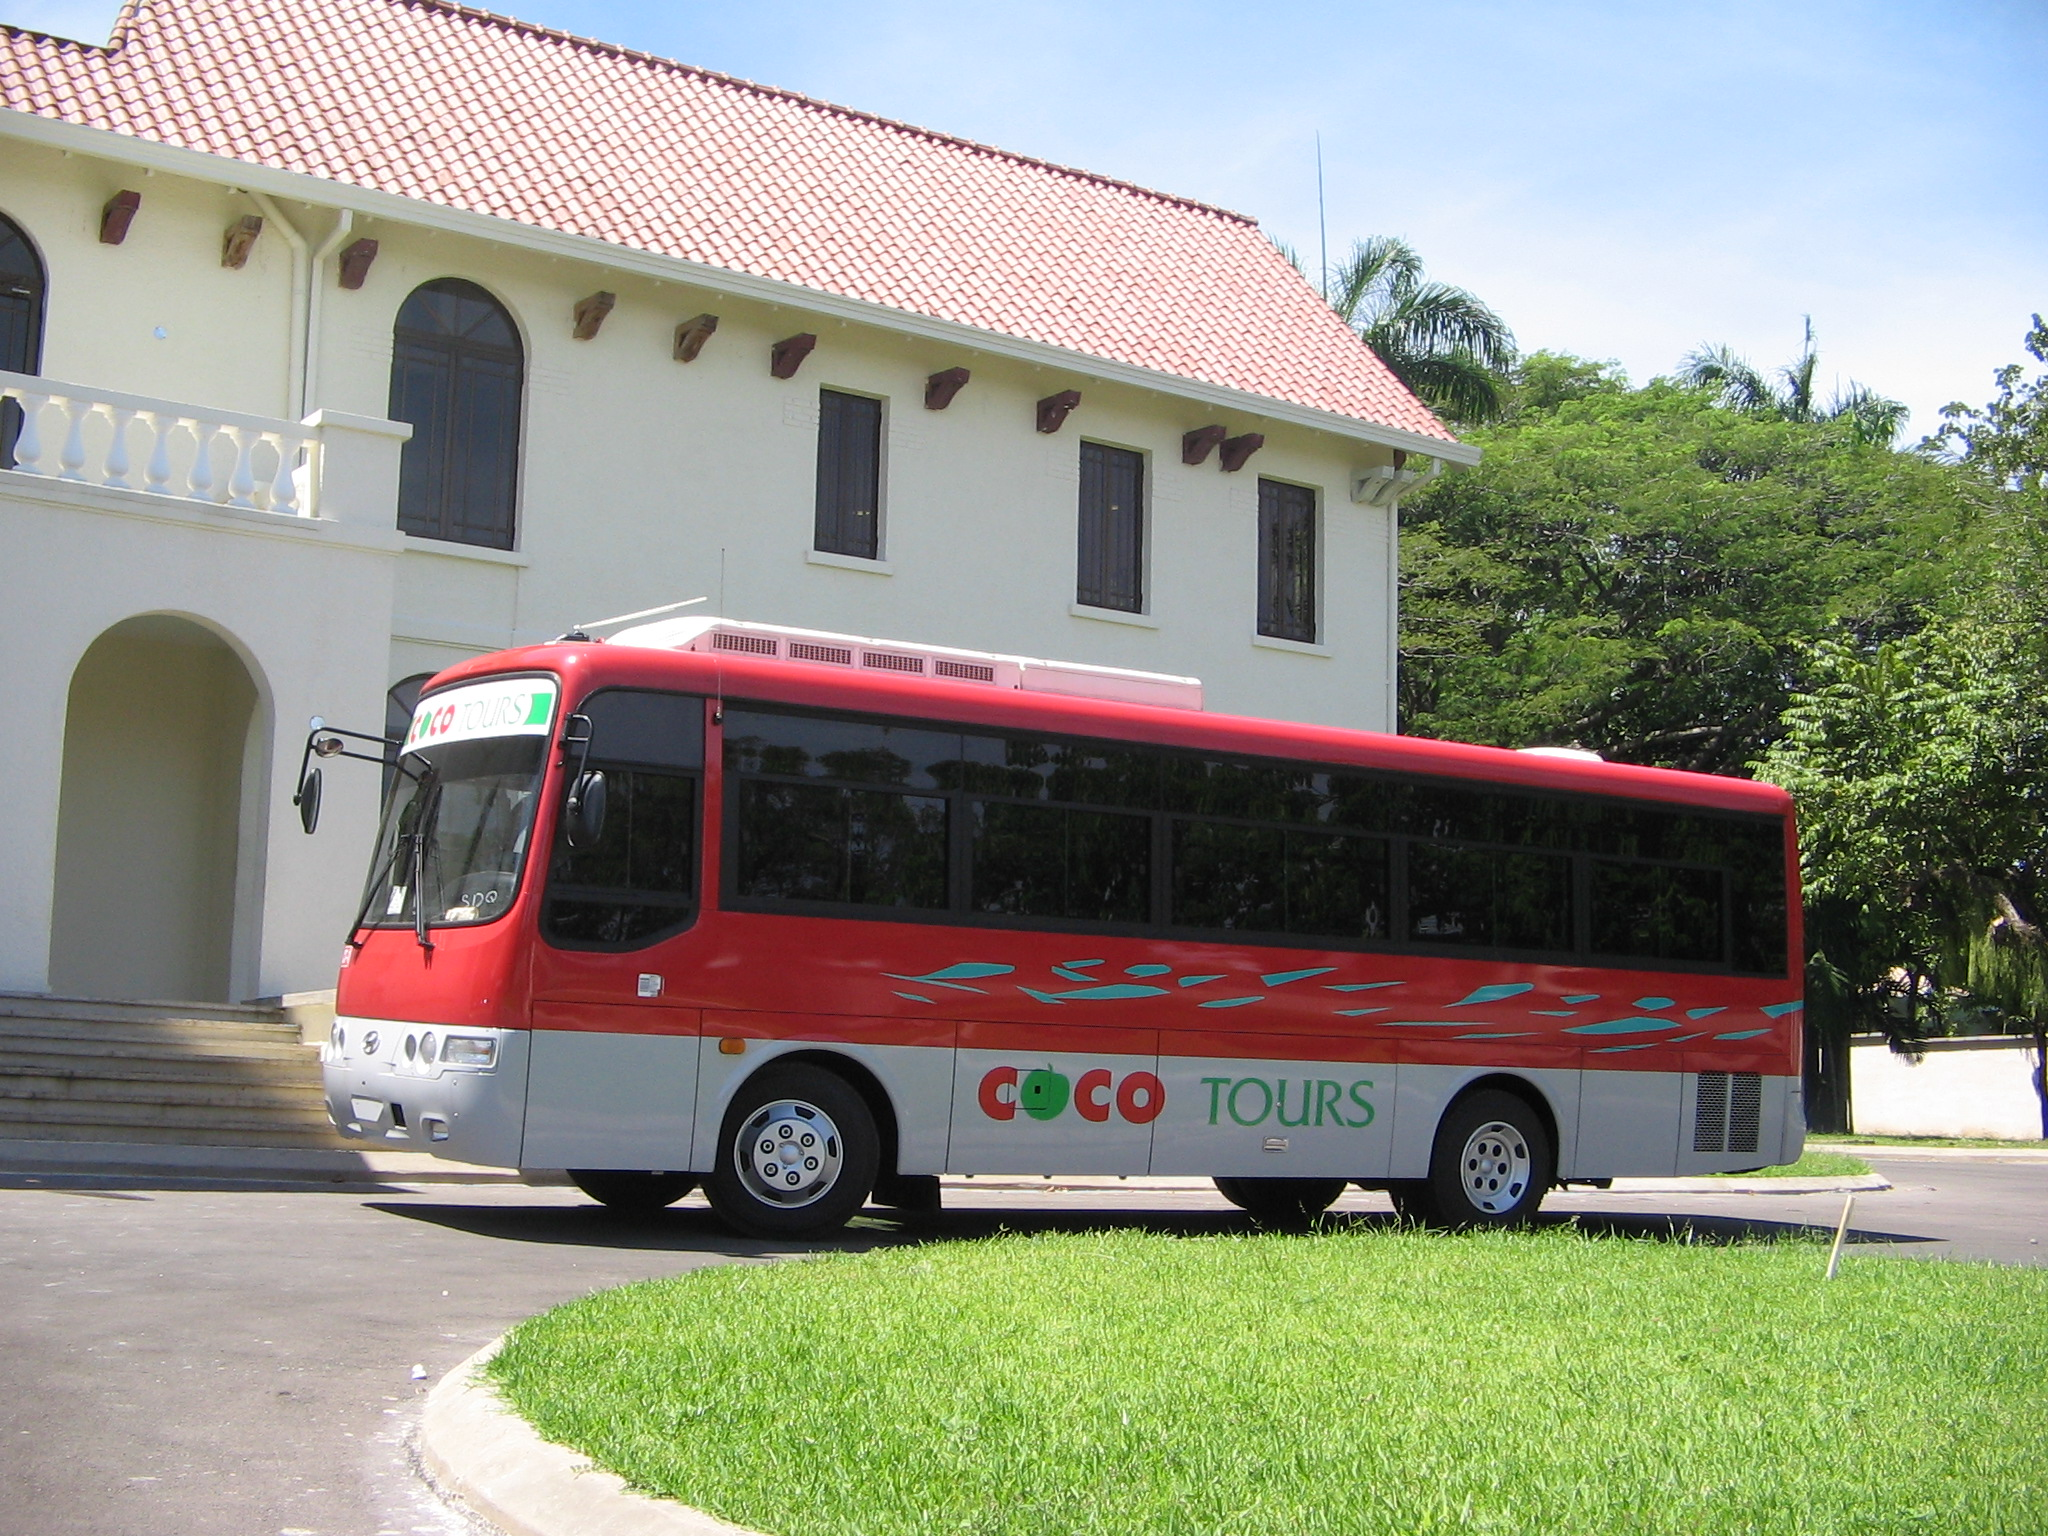 Larger Cocotours bus used on the route from Samana to Samana